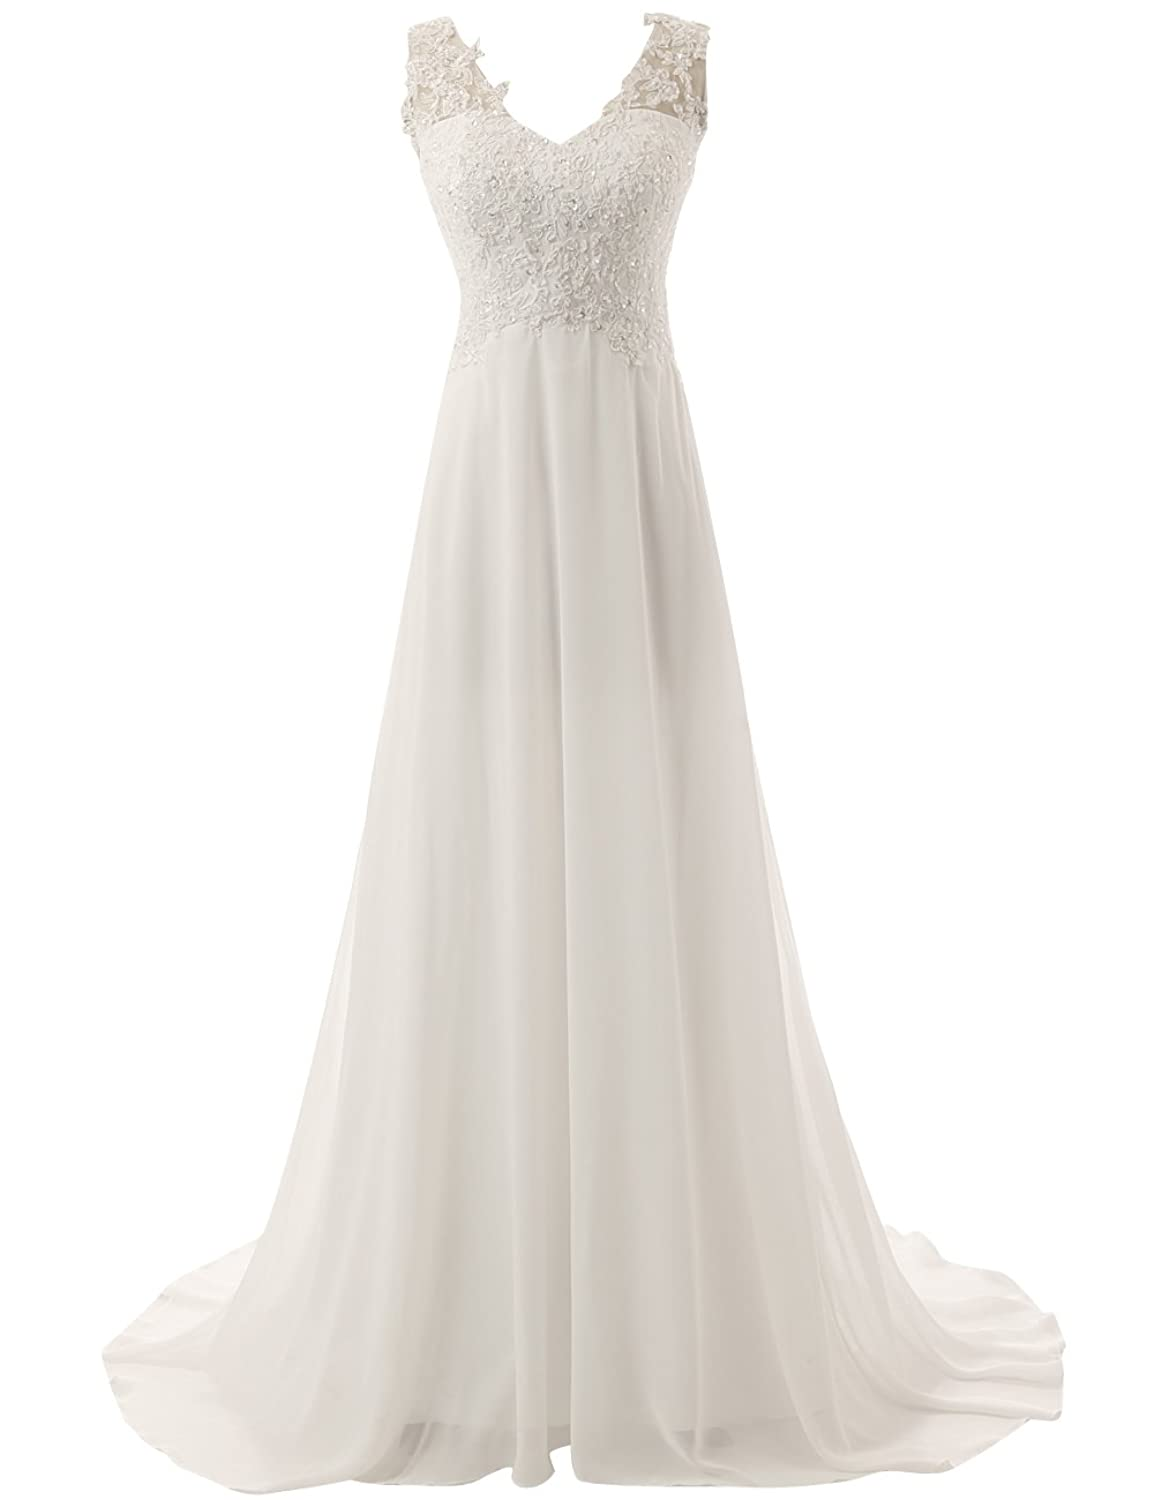 What to wear to a wedding wedding guest dress ideas for Amazon cheap wedding dresses